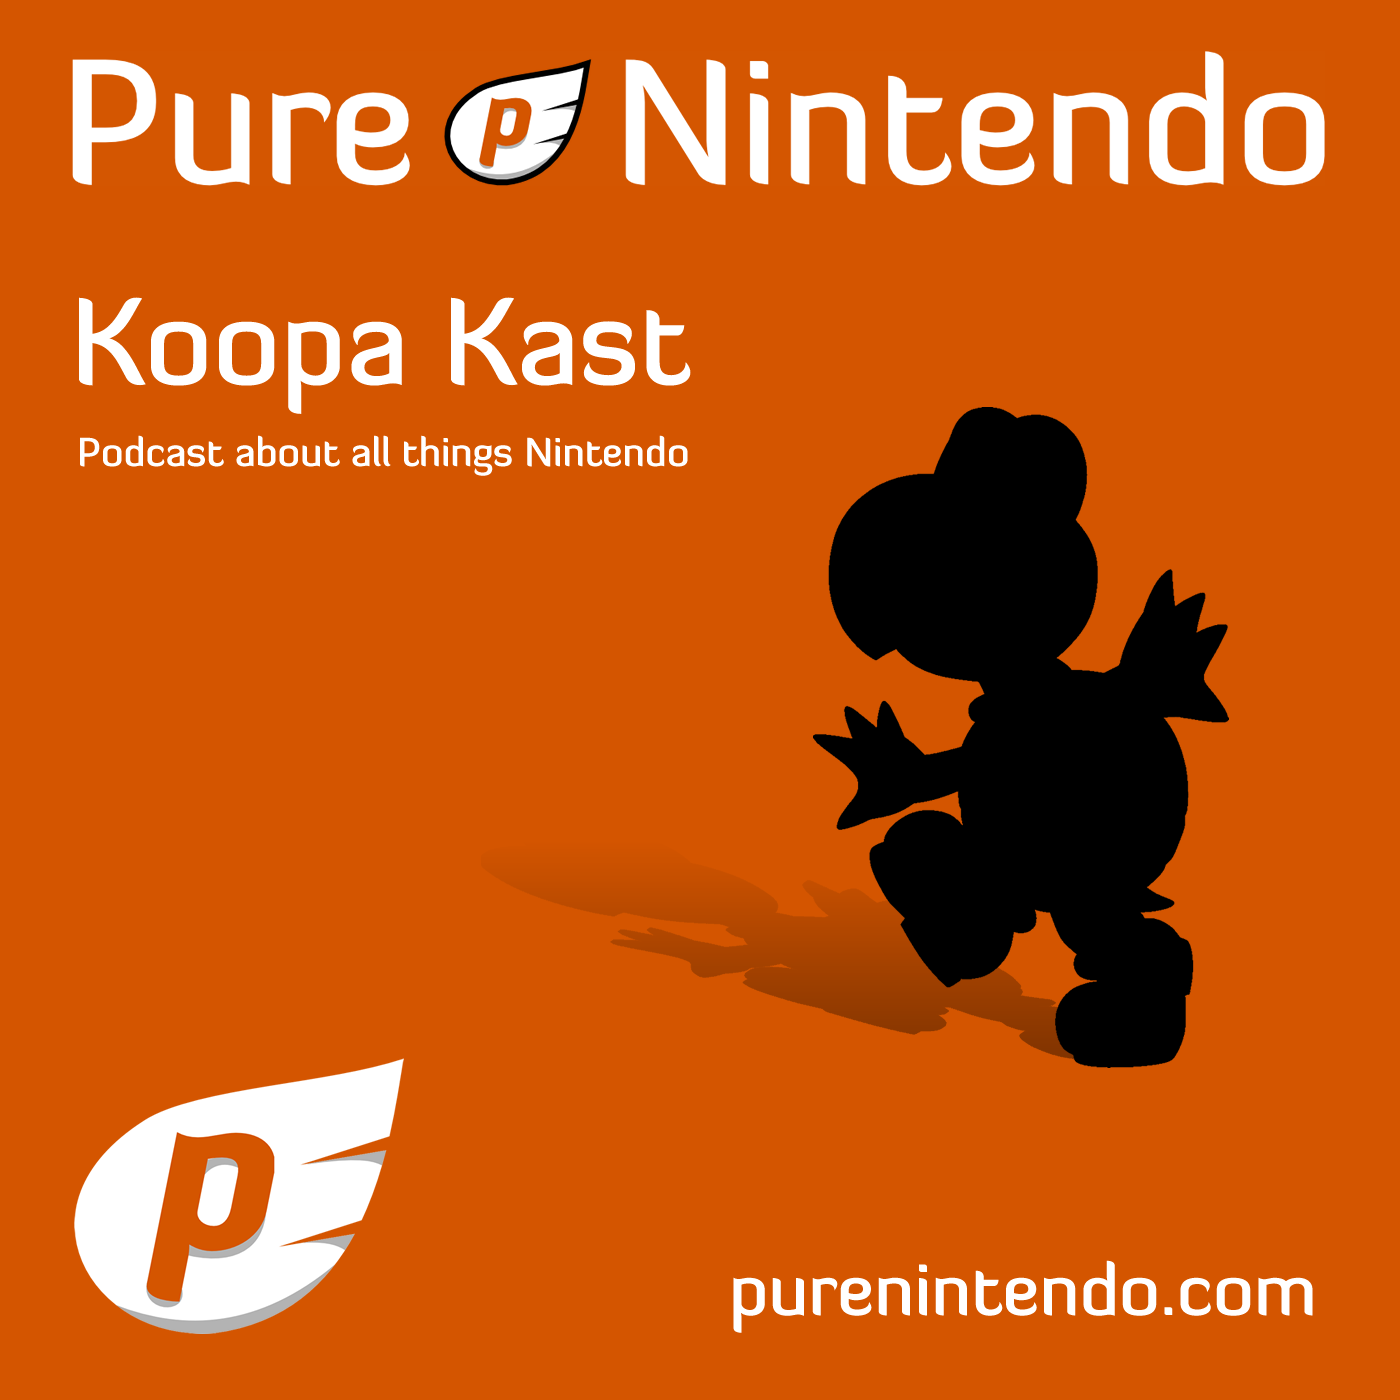 Koopa Kast (06/26/13) – Live at 8 PM EST